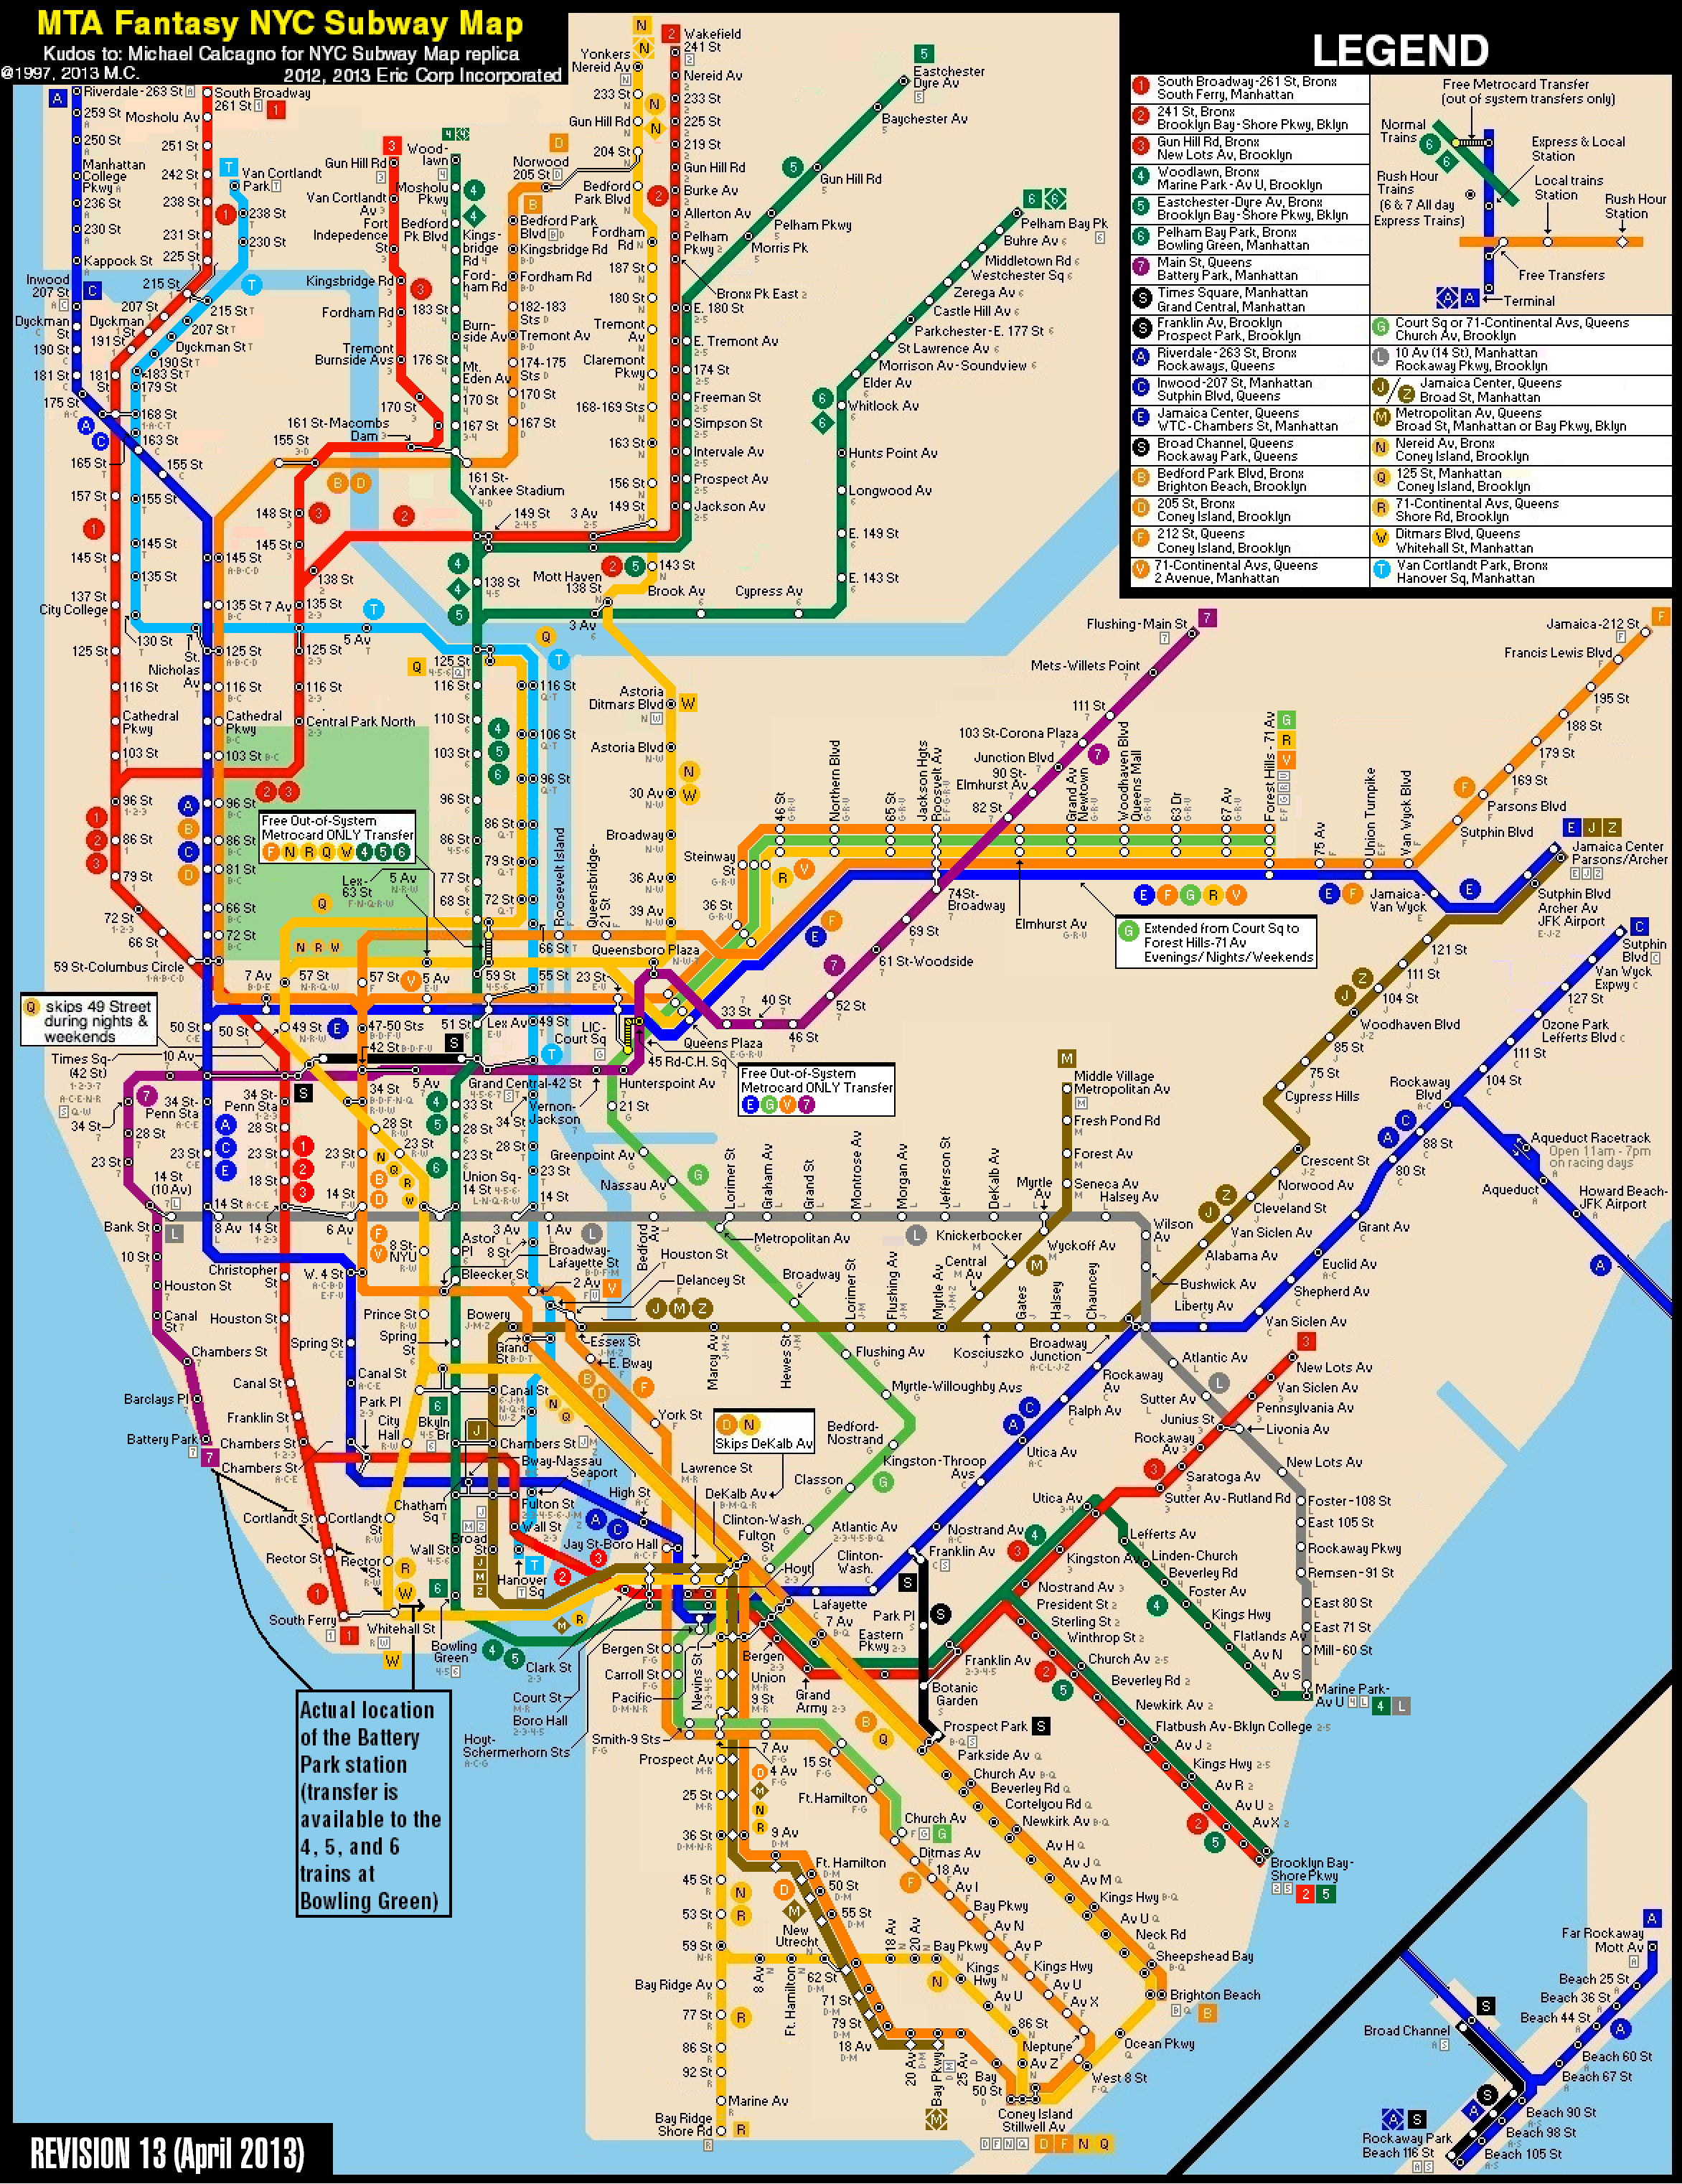 Ny York Subway Map.New York Subway Map New York City Subway Fantasy Map Revision 13